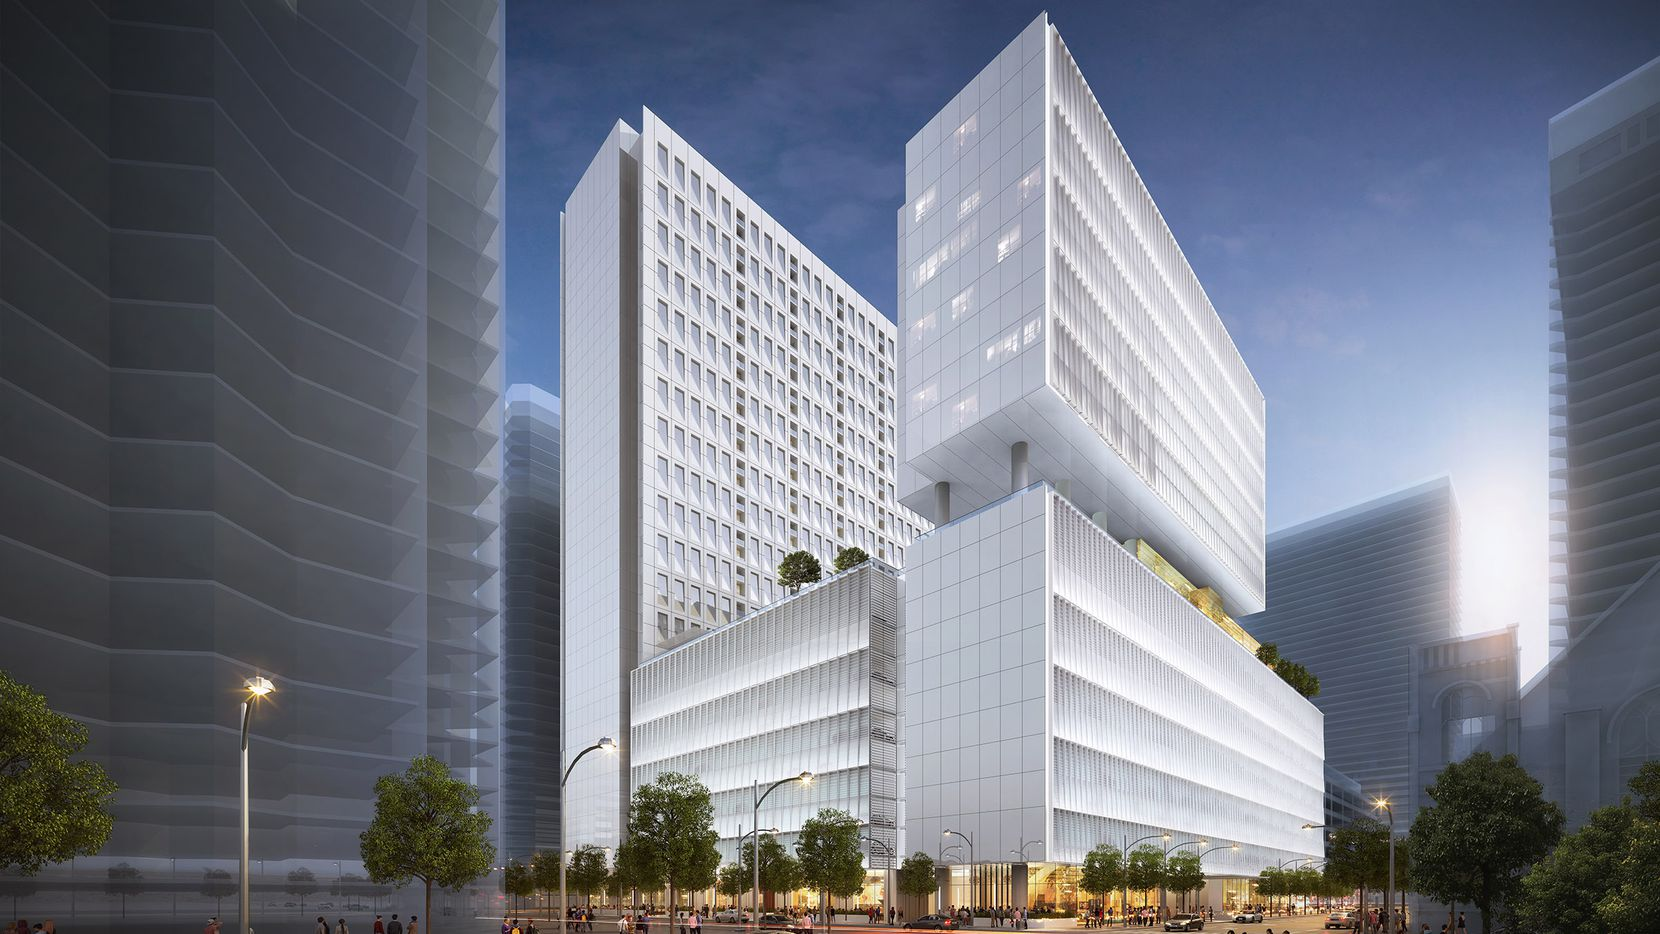 The property forsake is next door to a new high-rise on Ross Avenue will add retail, restaurants, a more than 2,000-car parking garage and a 200-room hotel across the street from Trammell Crow Center.